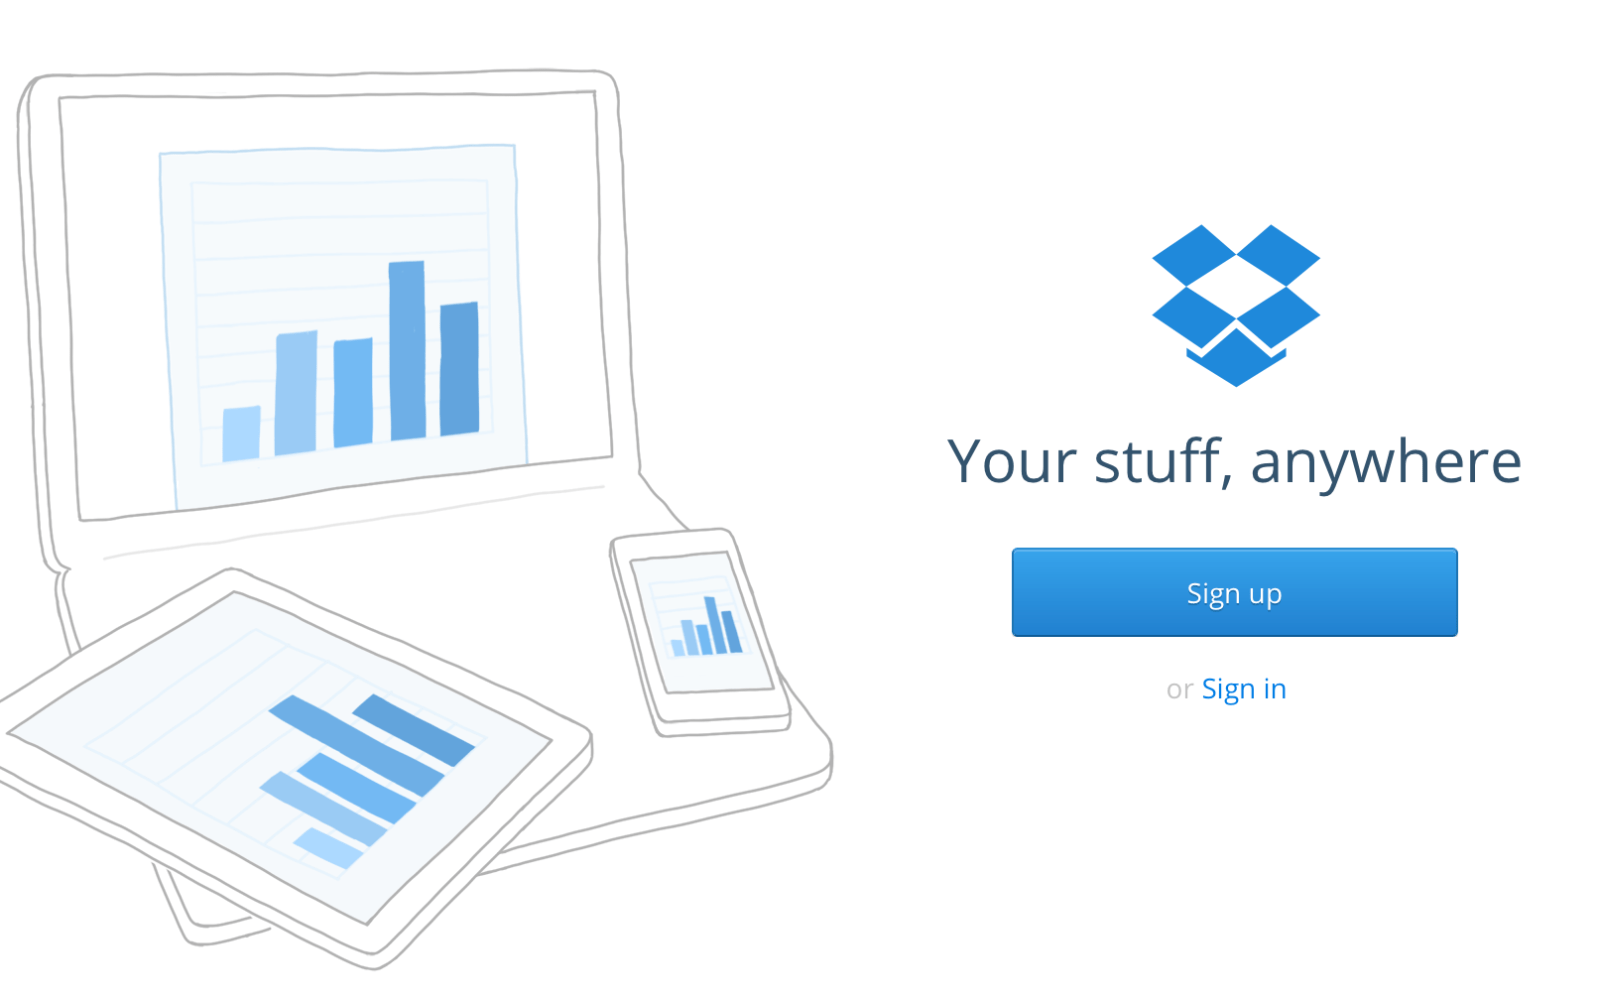 How-to: Setup and use Dropbox to manage and share photos, files